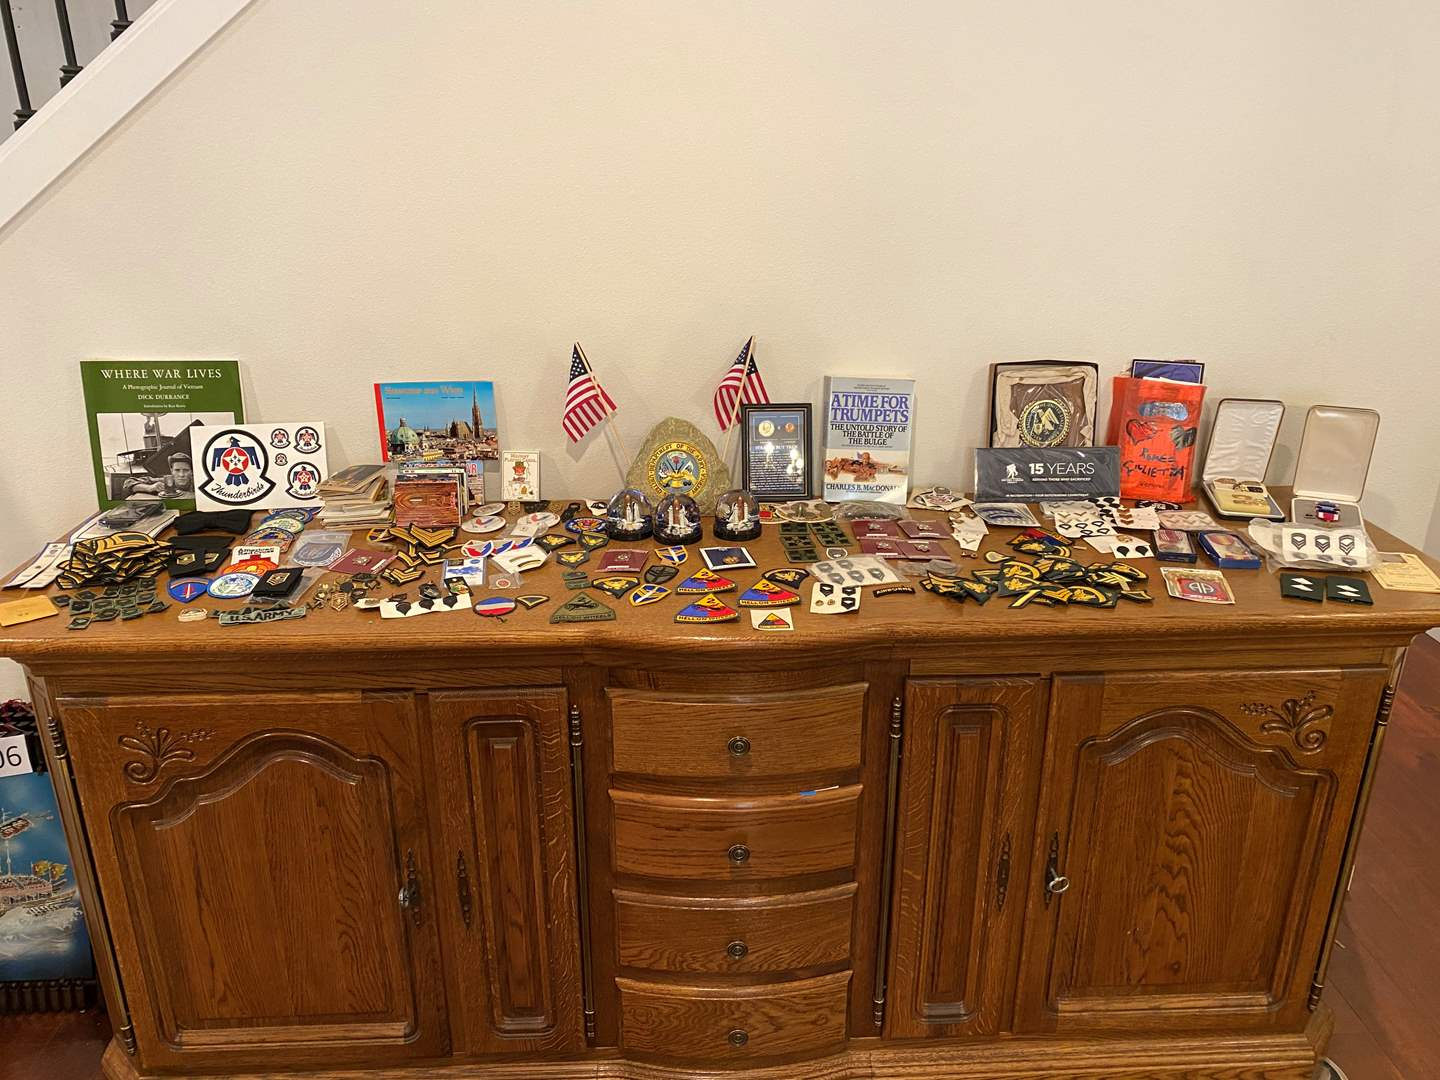 Lot # 178 - Military Patches, Pins, Medals, Post Cards, Girl Scout Patches & Other Military Items (main image)